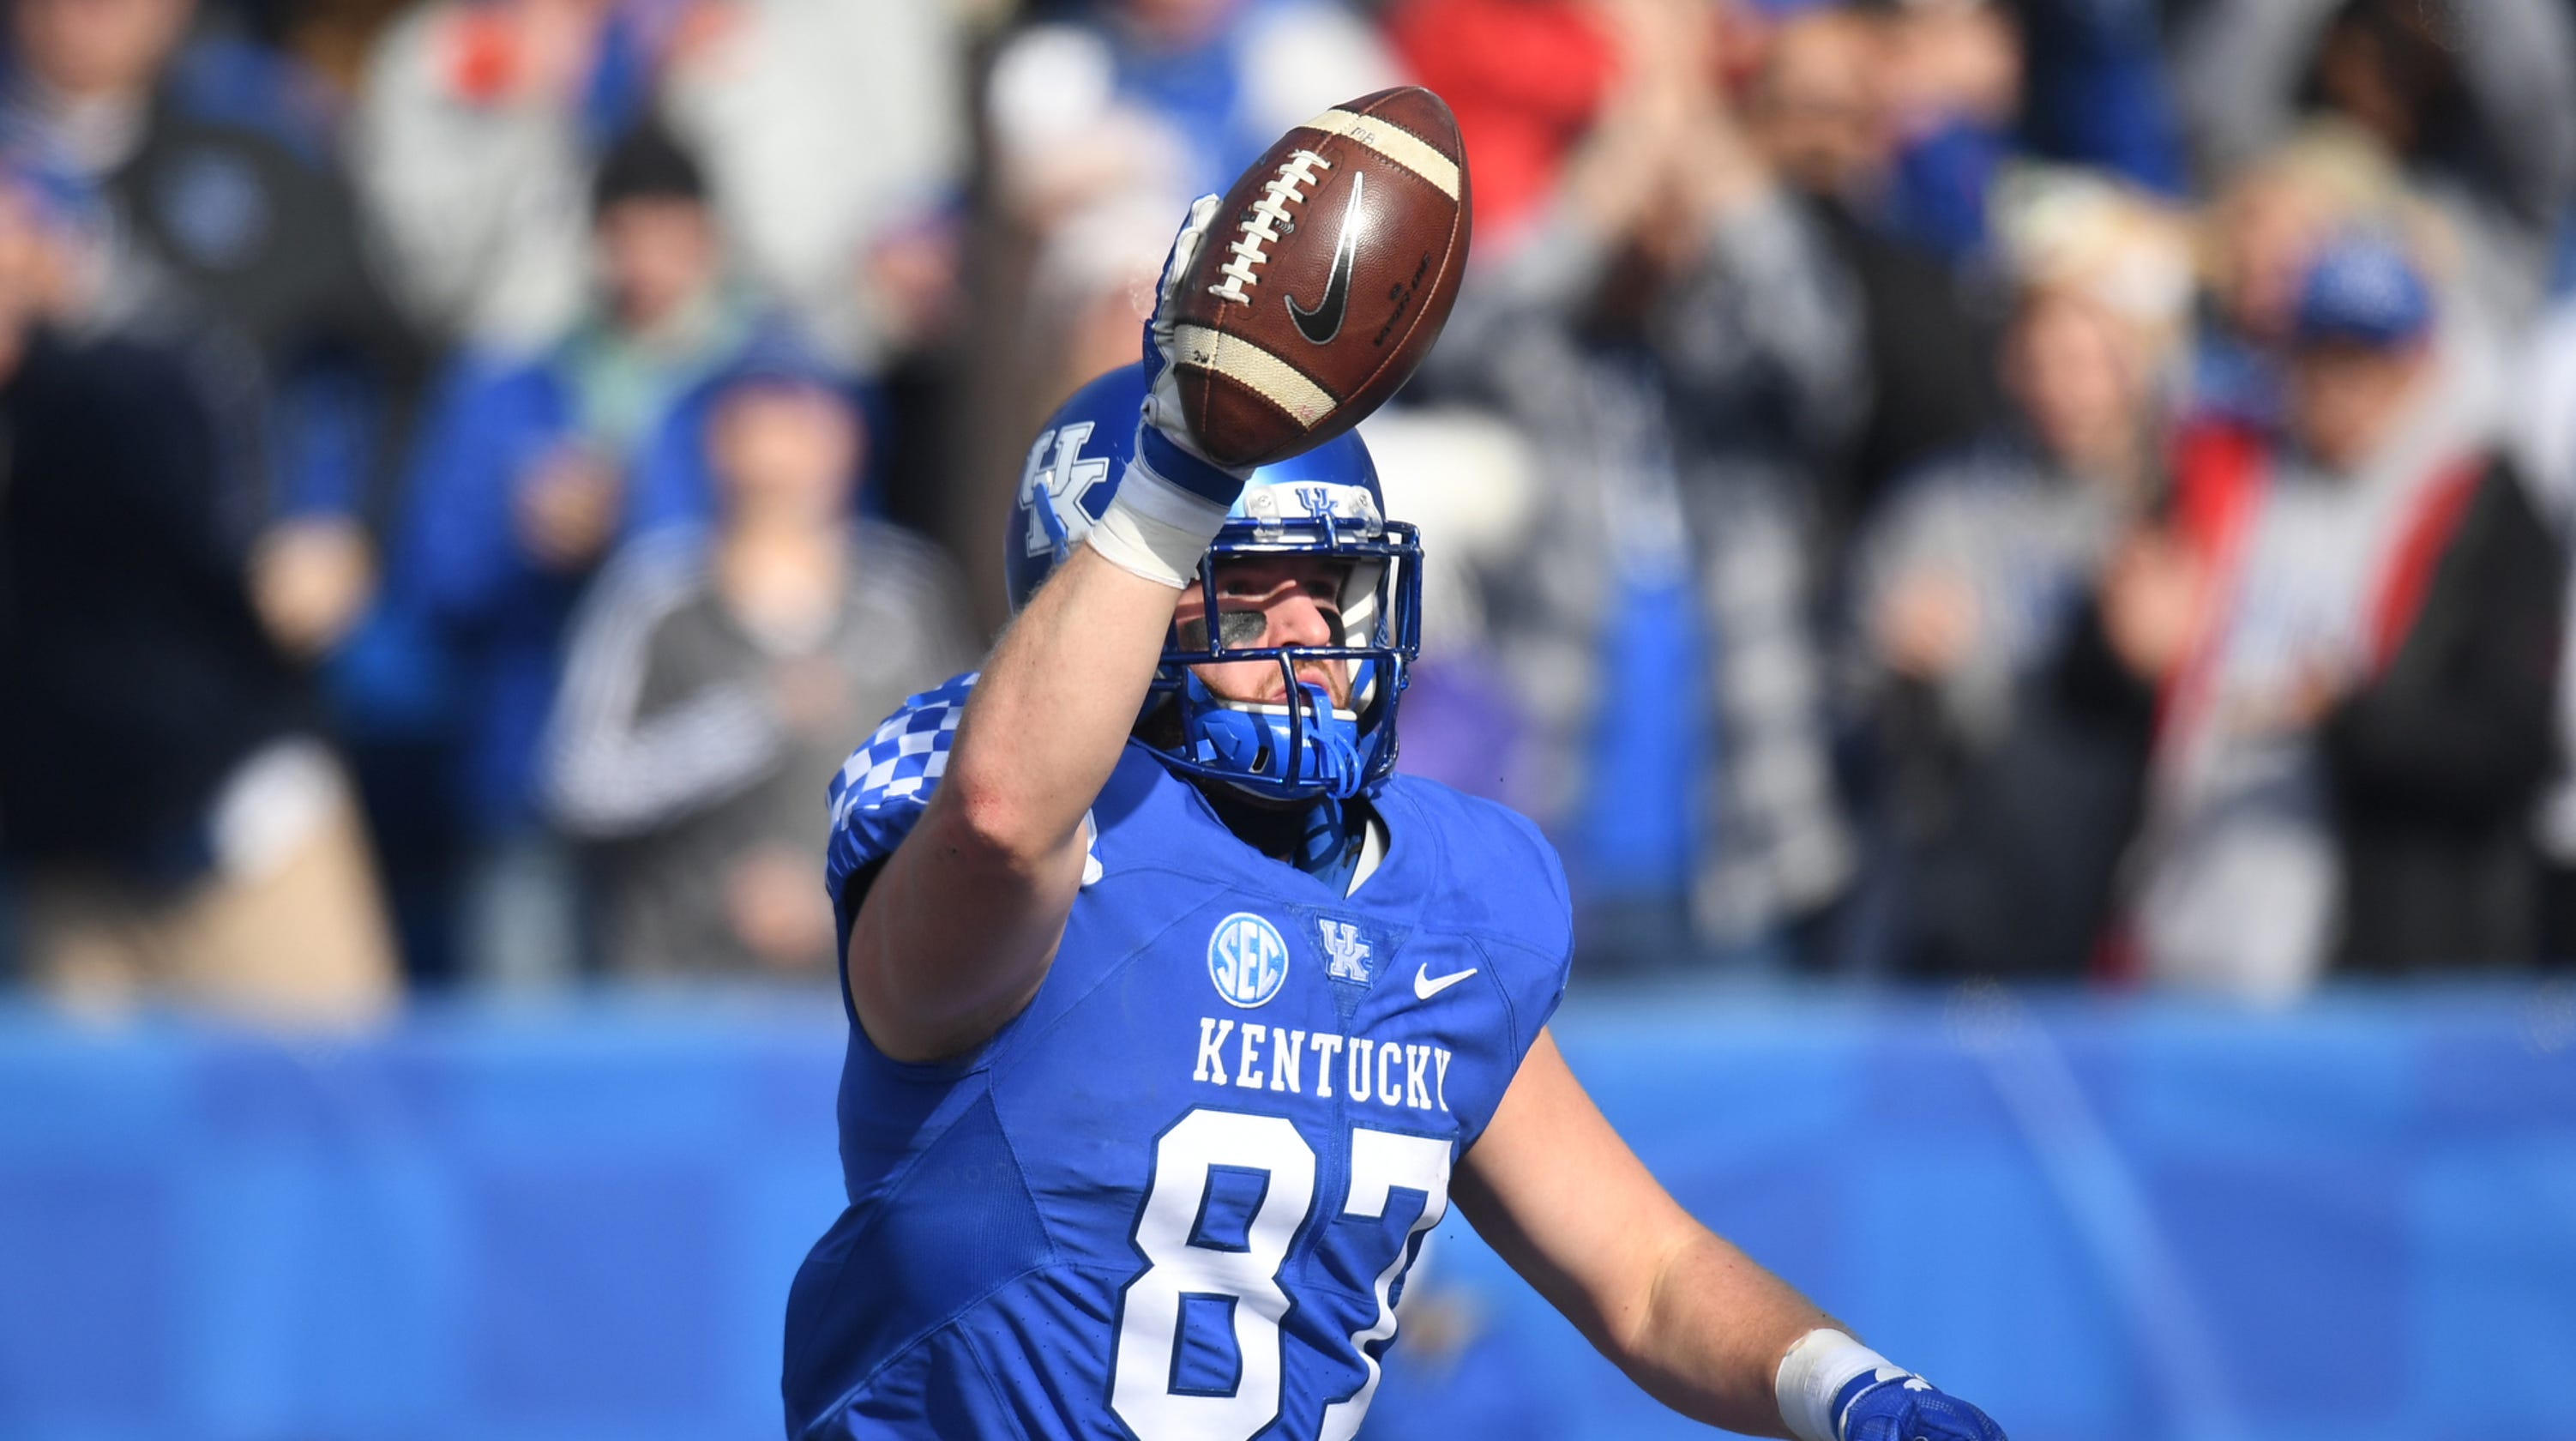 Could UK football really have a dozen players in the 2019 NFL draft  8814c7021